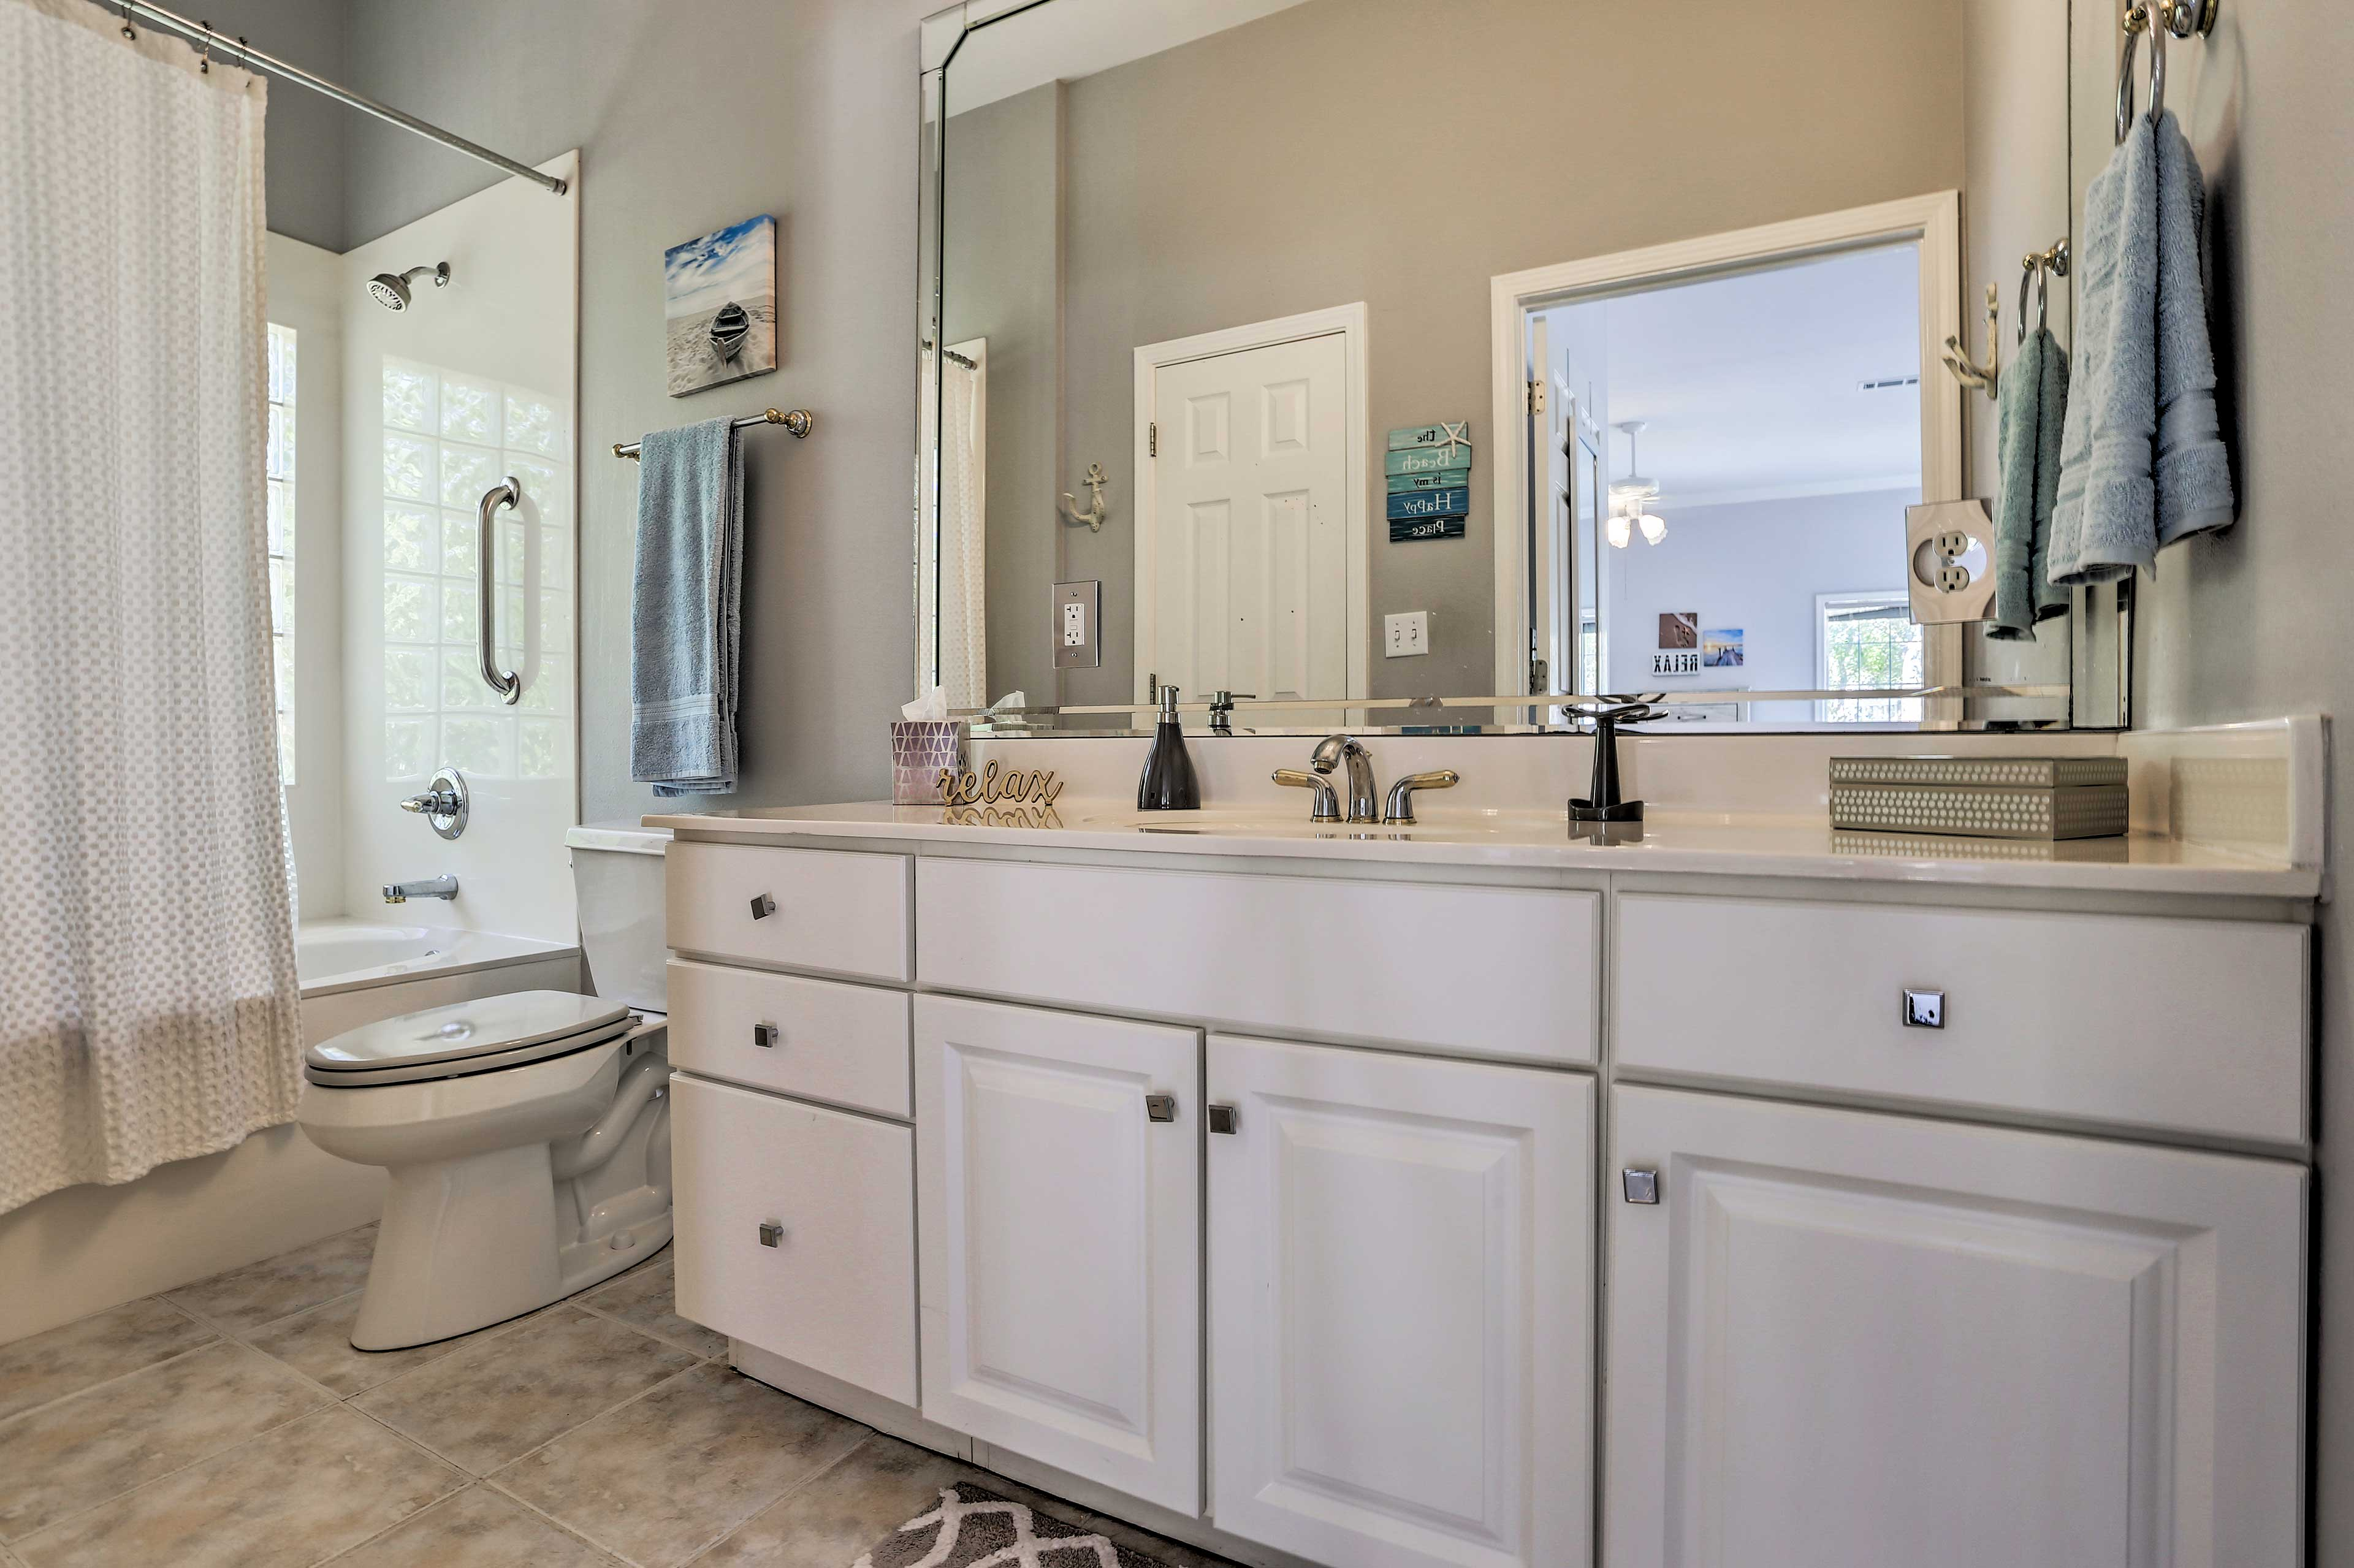 Get ready for bed side by side at this double vanity.